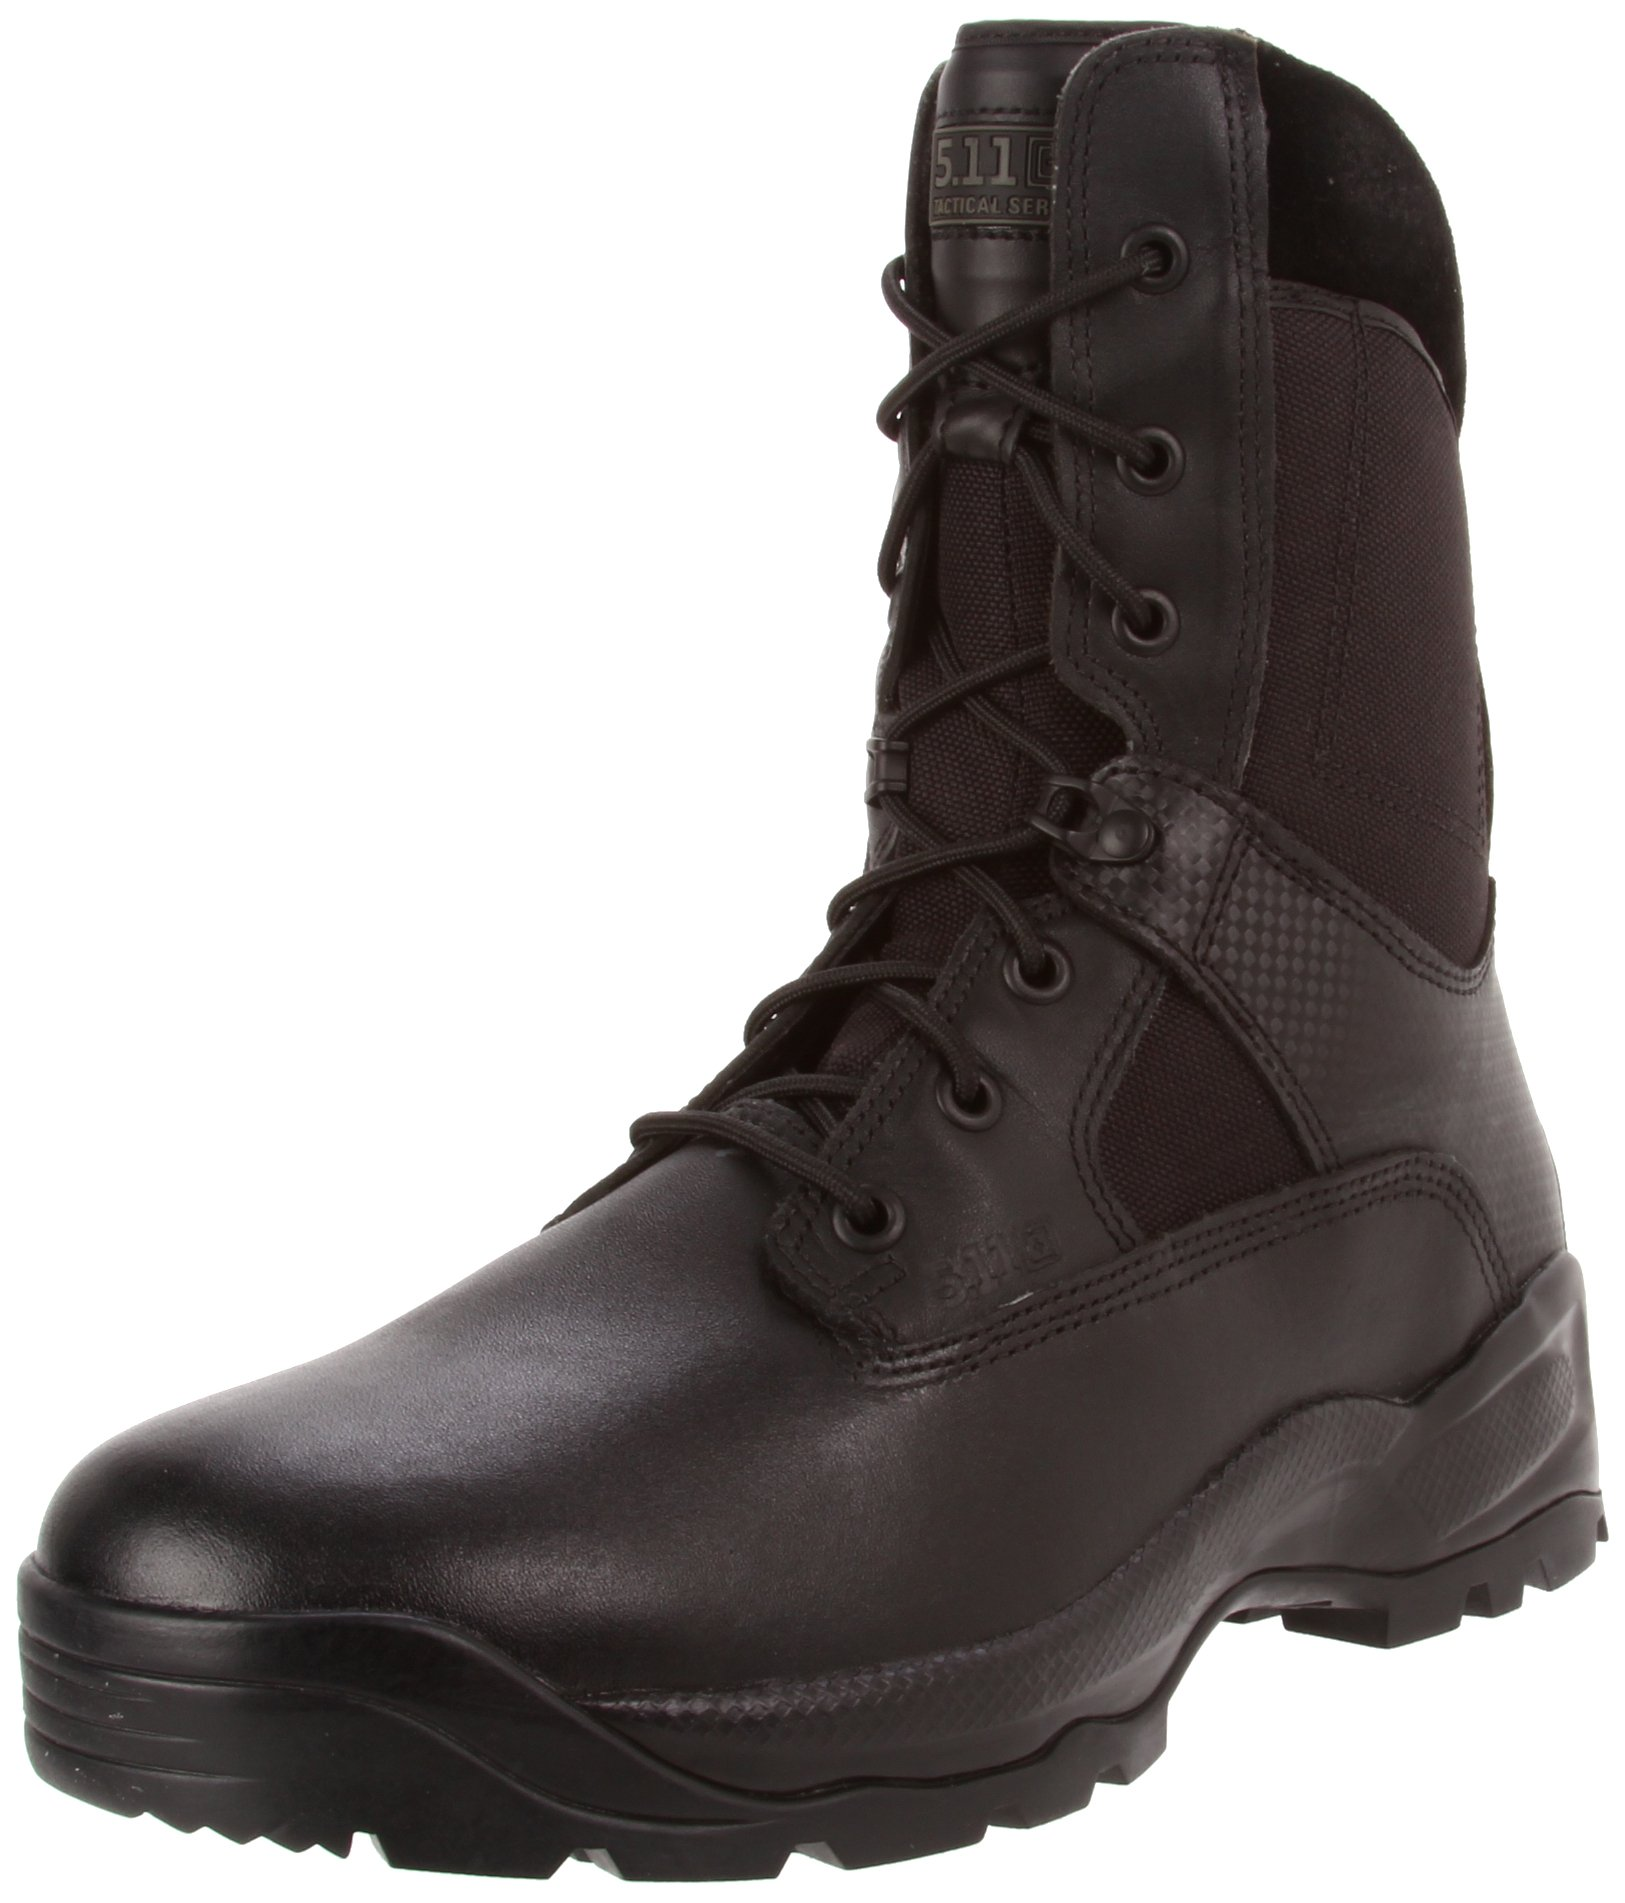 5.11 Tactical  A.T.A.C. 8''  Side Zip Boot, Black, 10.5 by 5.11